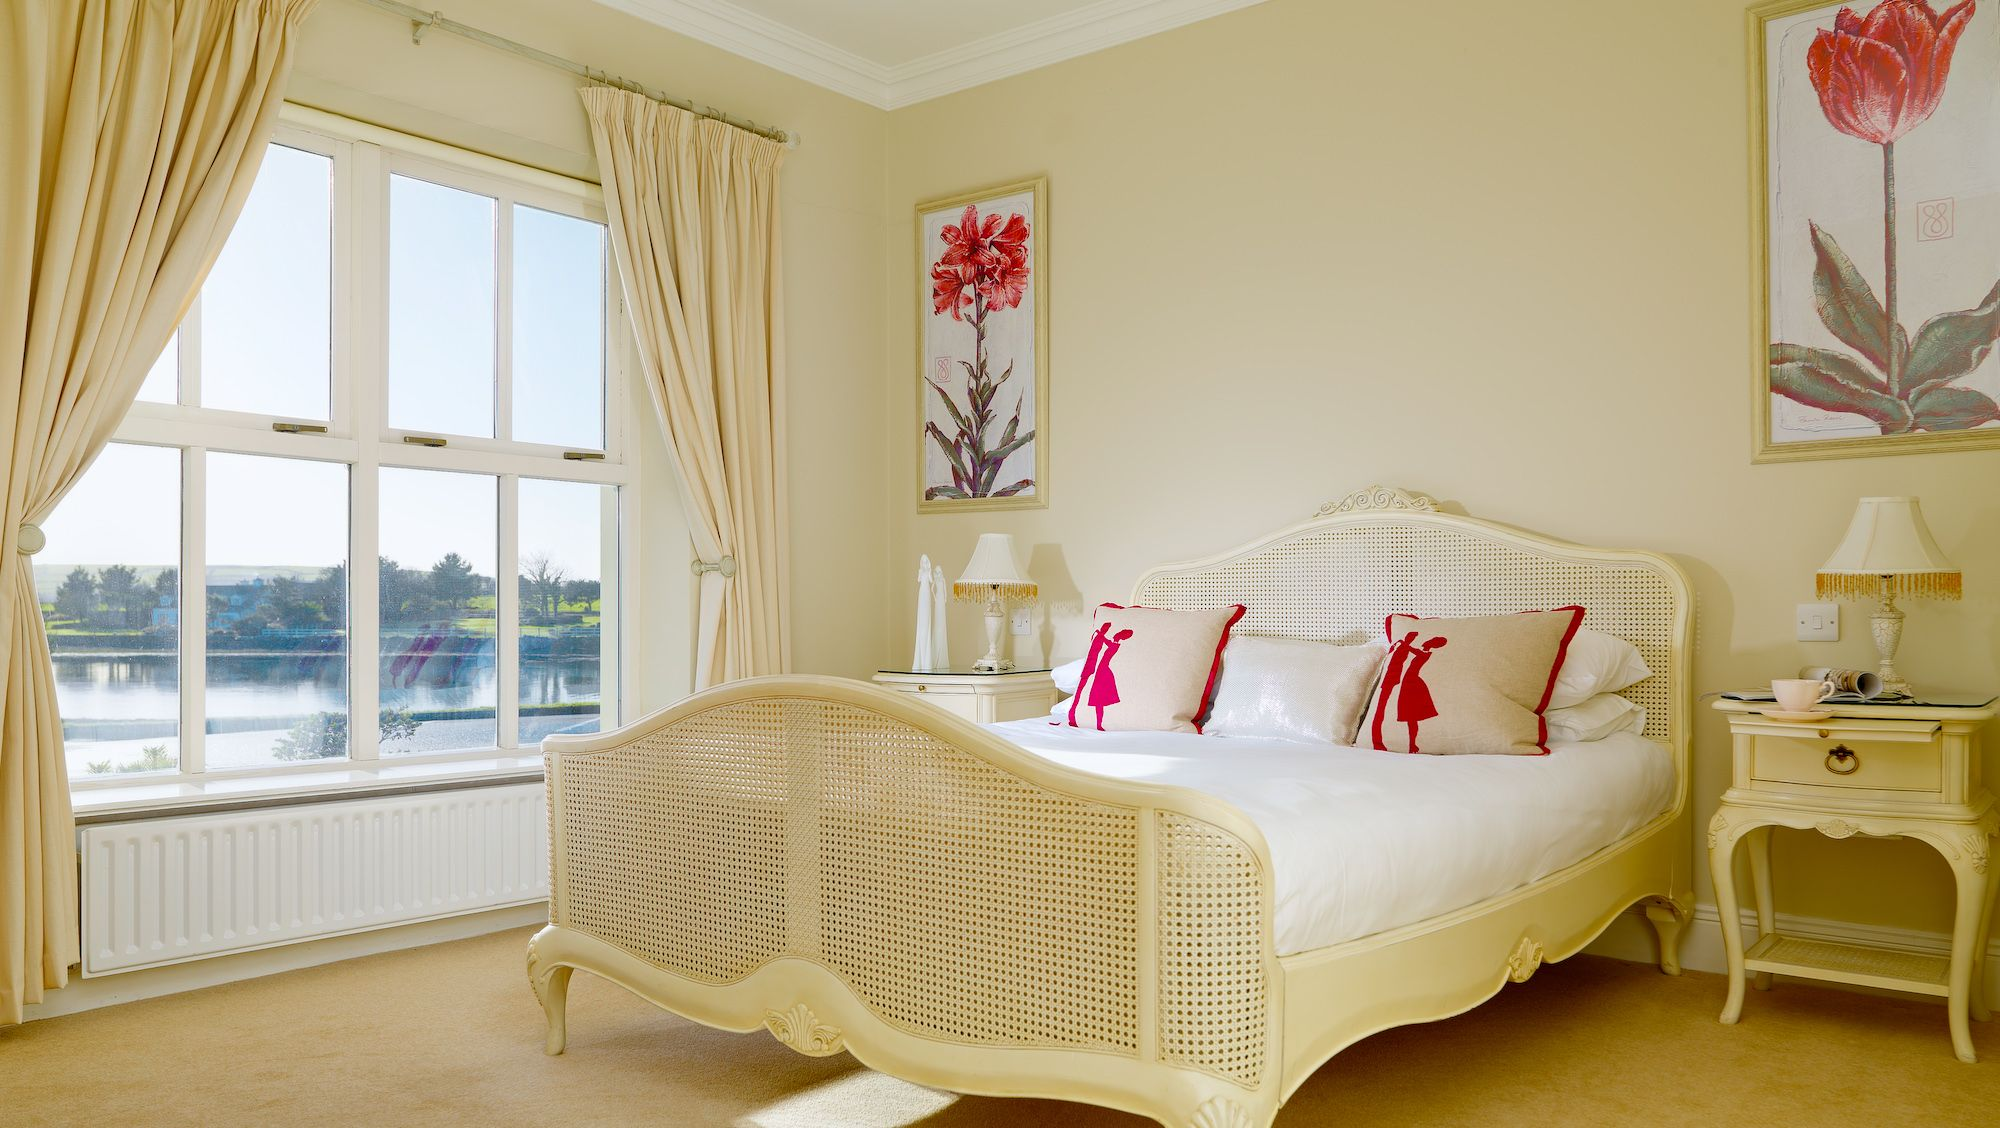 3 window bedroom  room   bedroom  rooms in our guesthouse  pinterest  room and